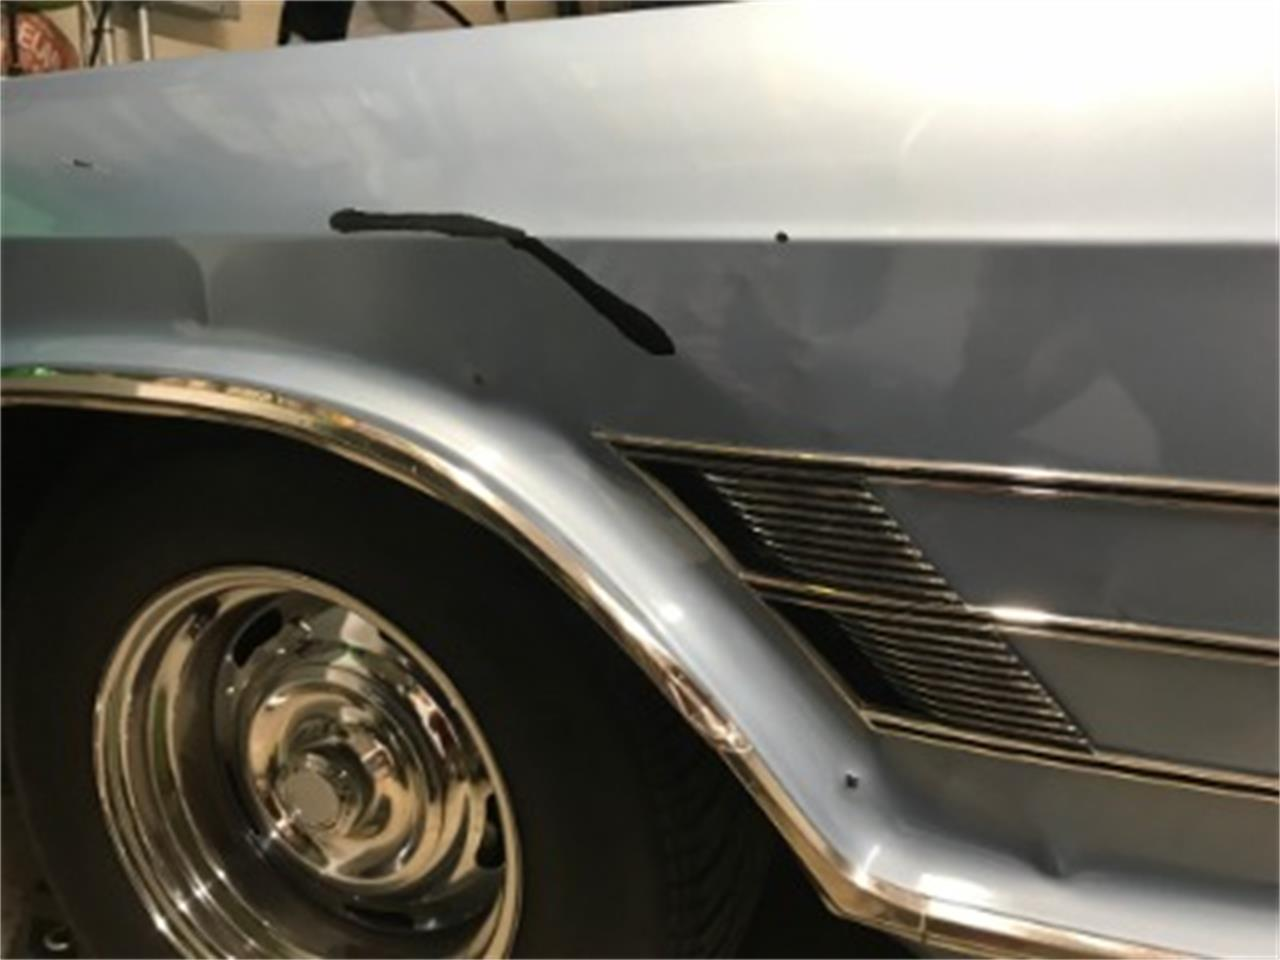 1965 Buick Wildcat for sale in Mundelein, IL – photo 19